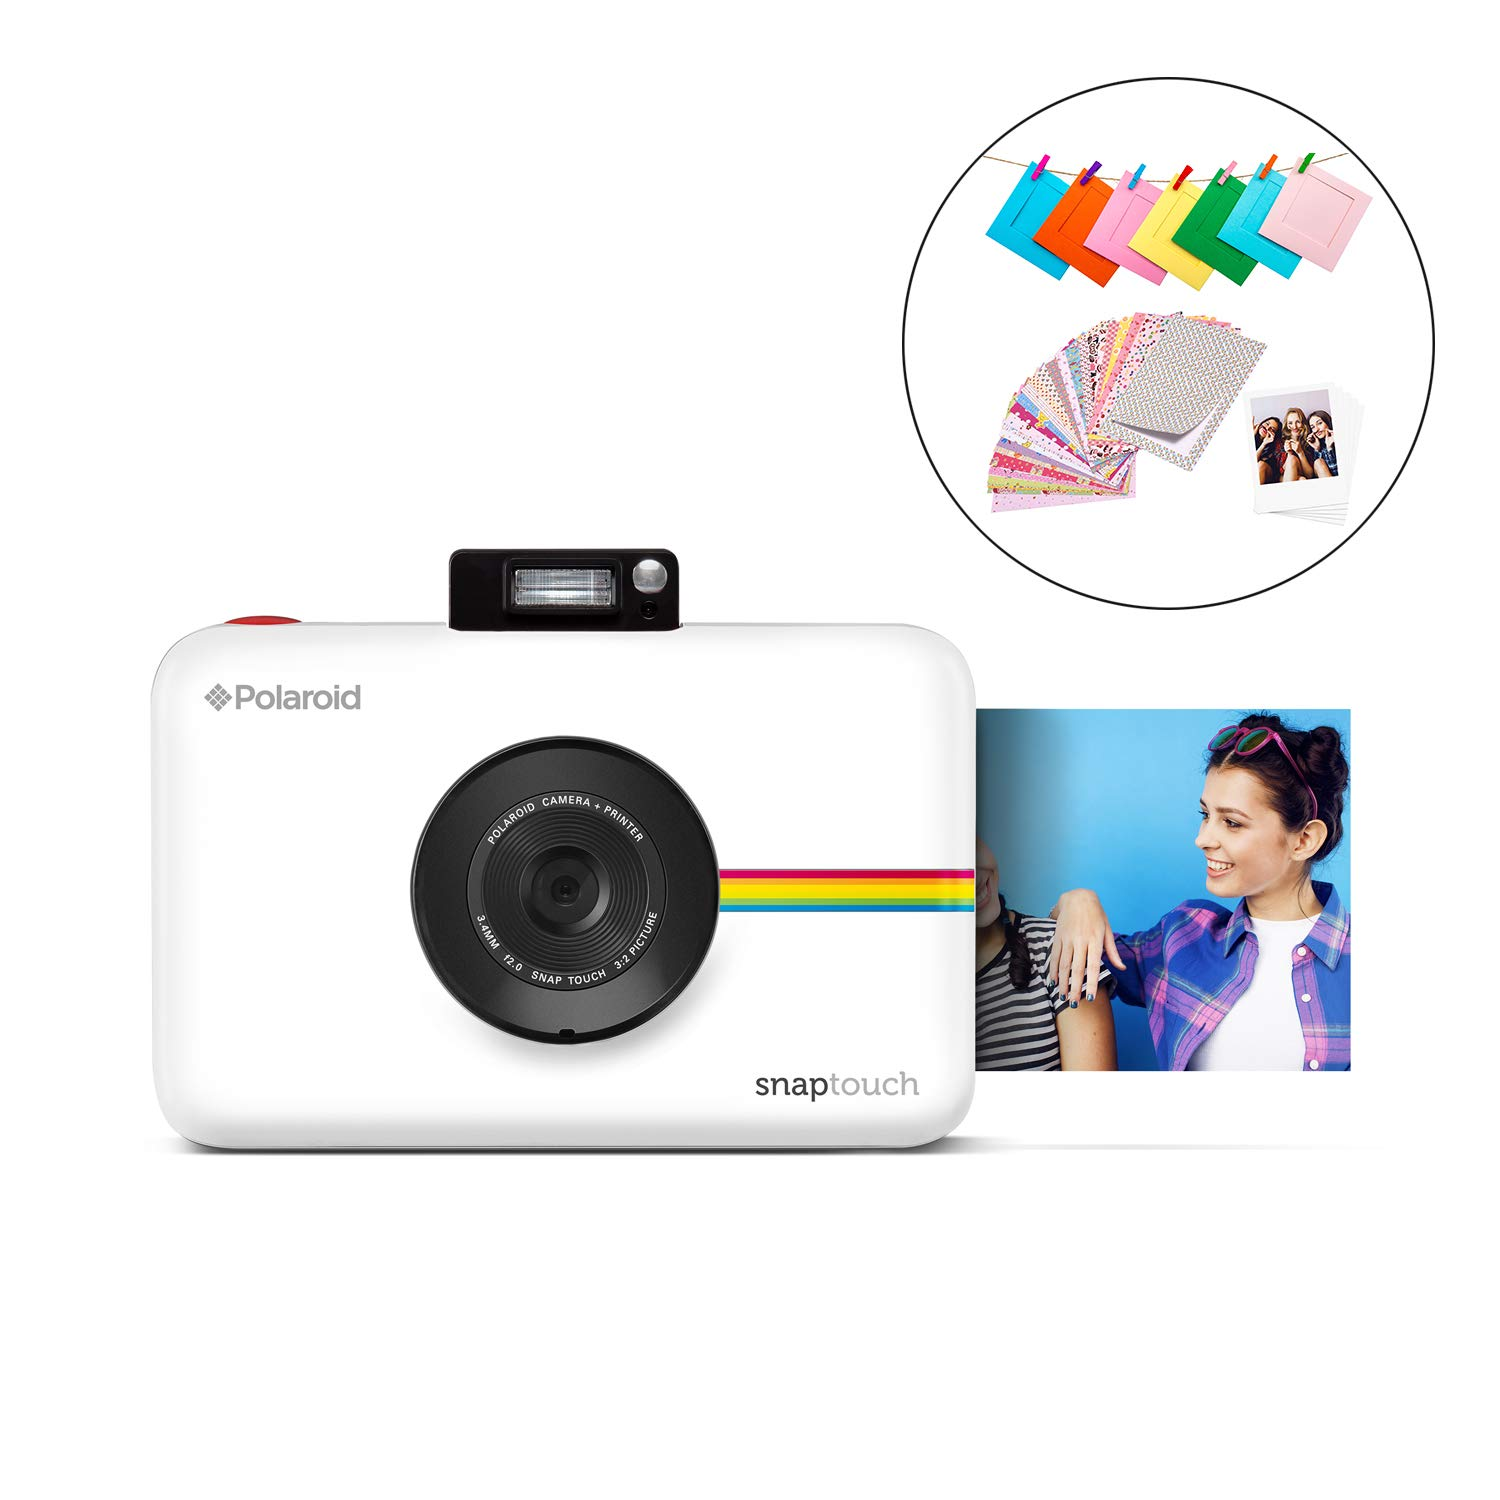 Polaroid SNAP Touch 2.0 - 13MP Portable Instant Print Digital Photo Camera w/Built-In Touchscreen Display, White by Polaroid